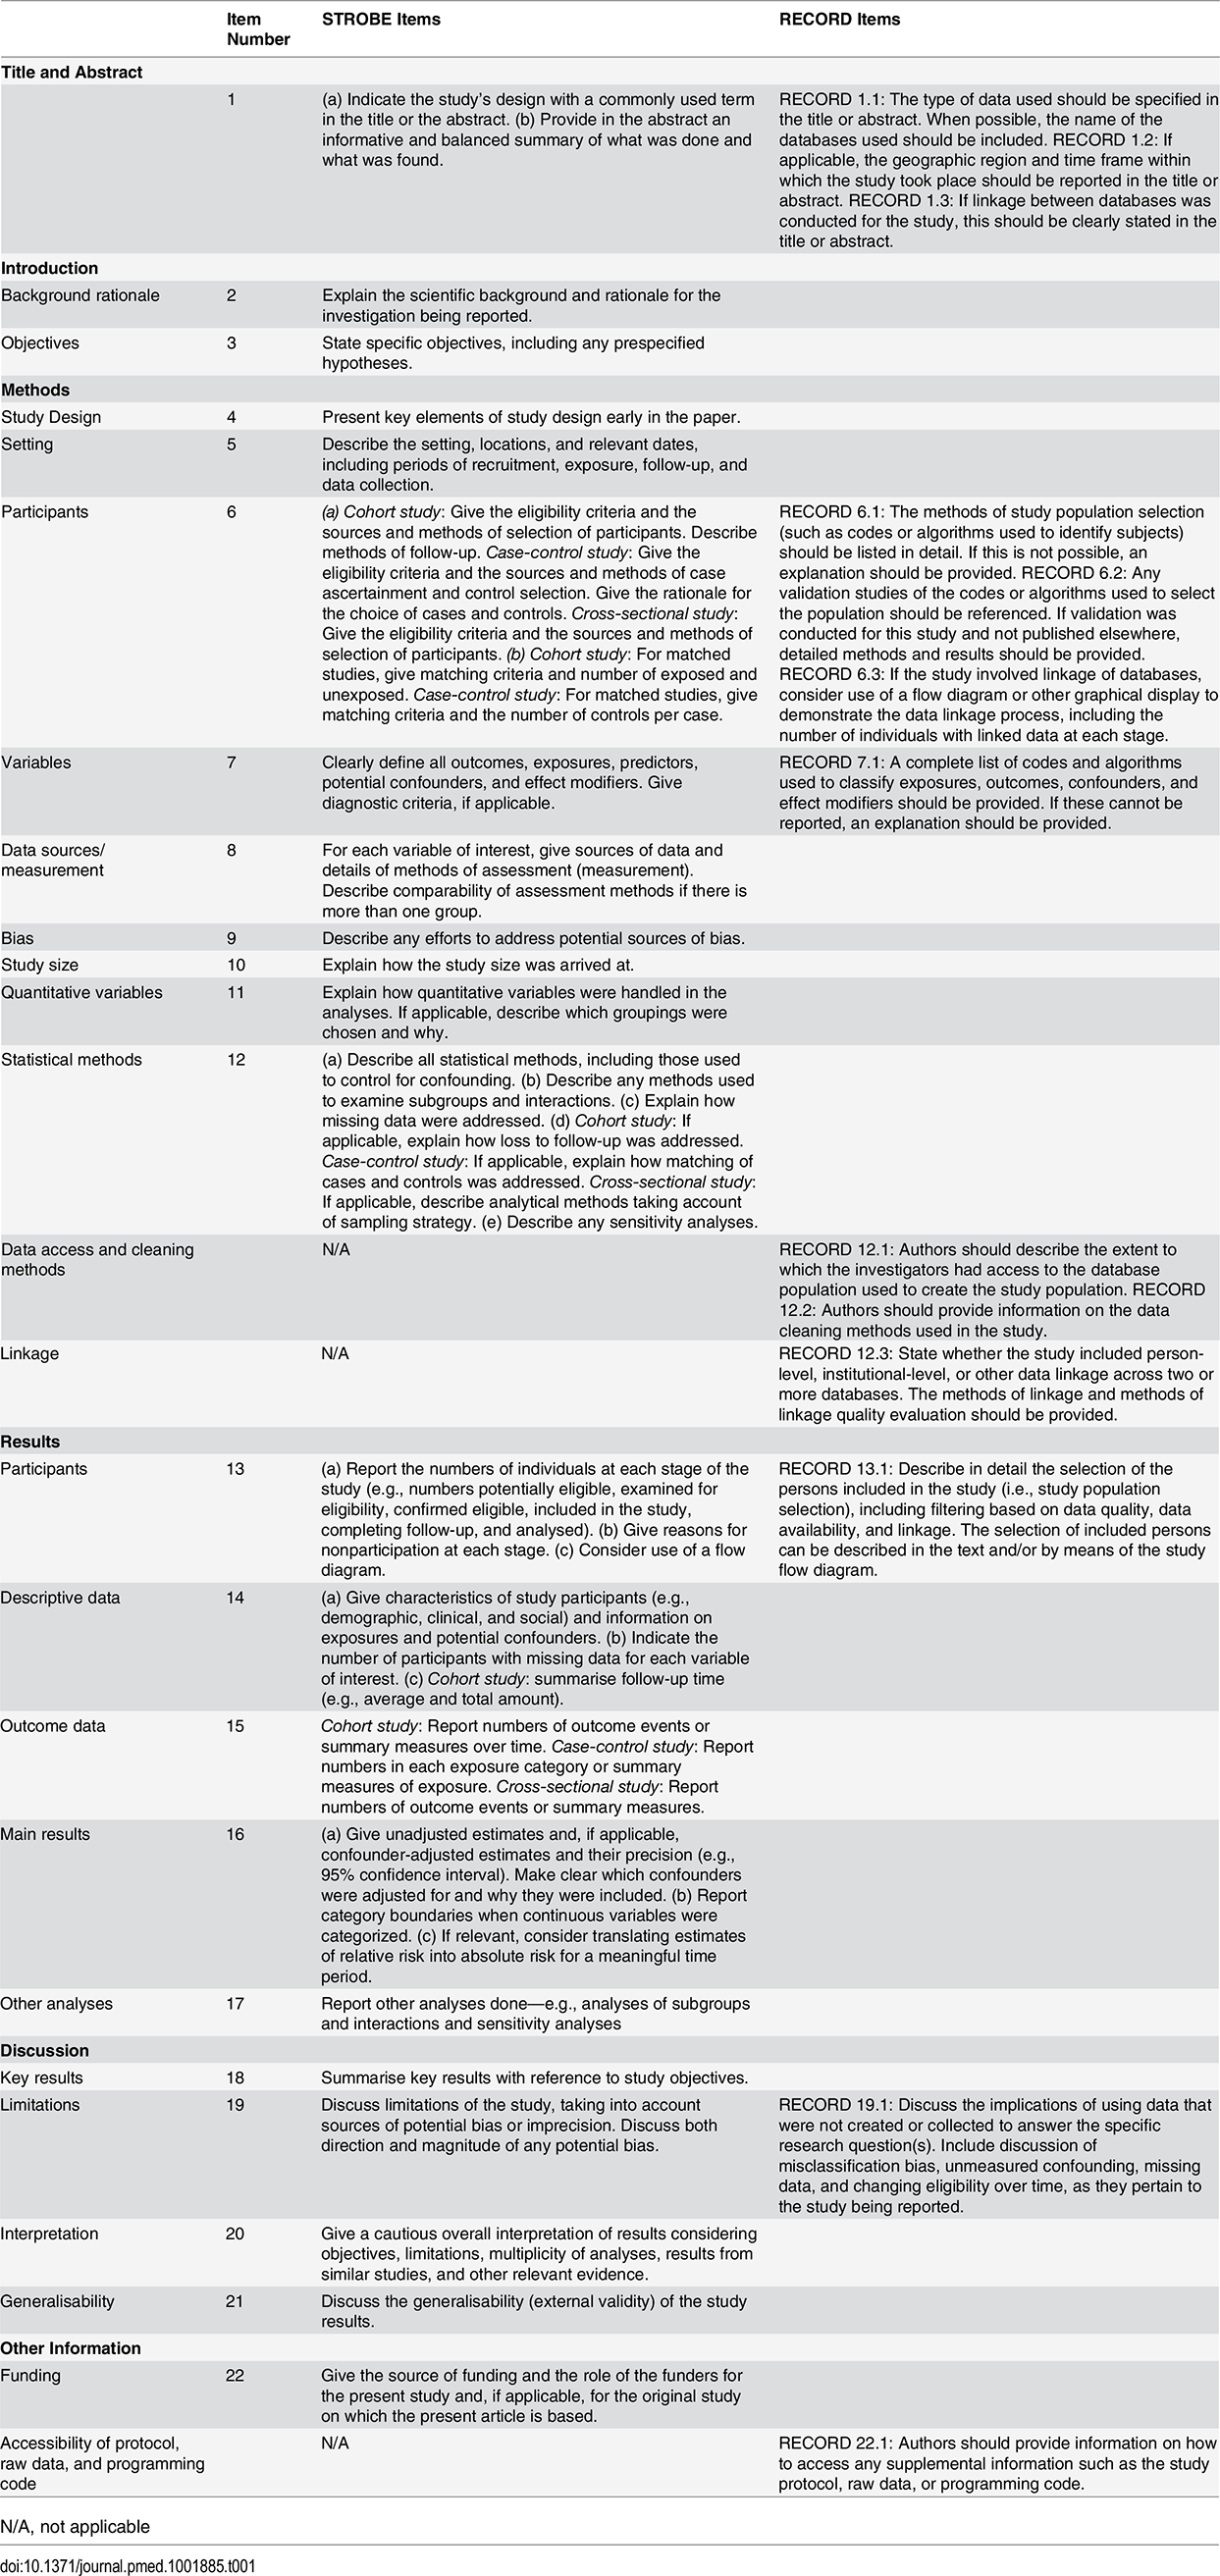 The RECORD statement: Checklist of items, extended from the STROBE statement, that should be reported in observational studies using routinely collected health data.